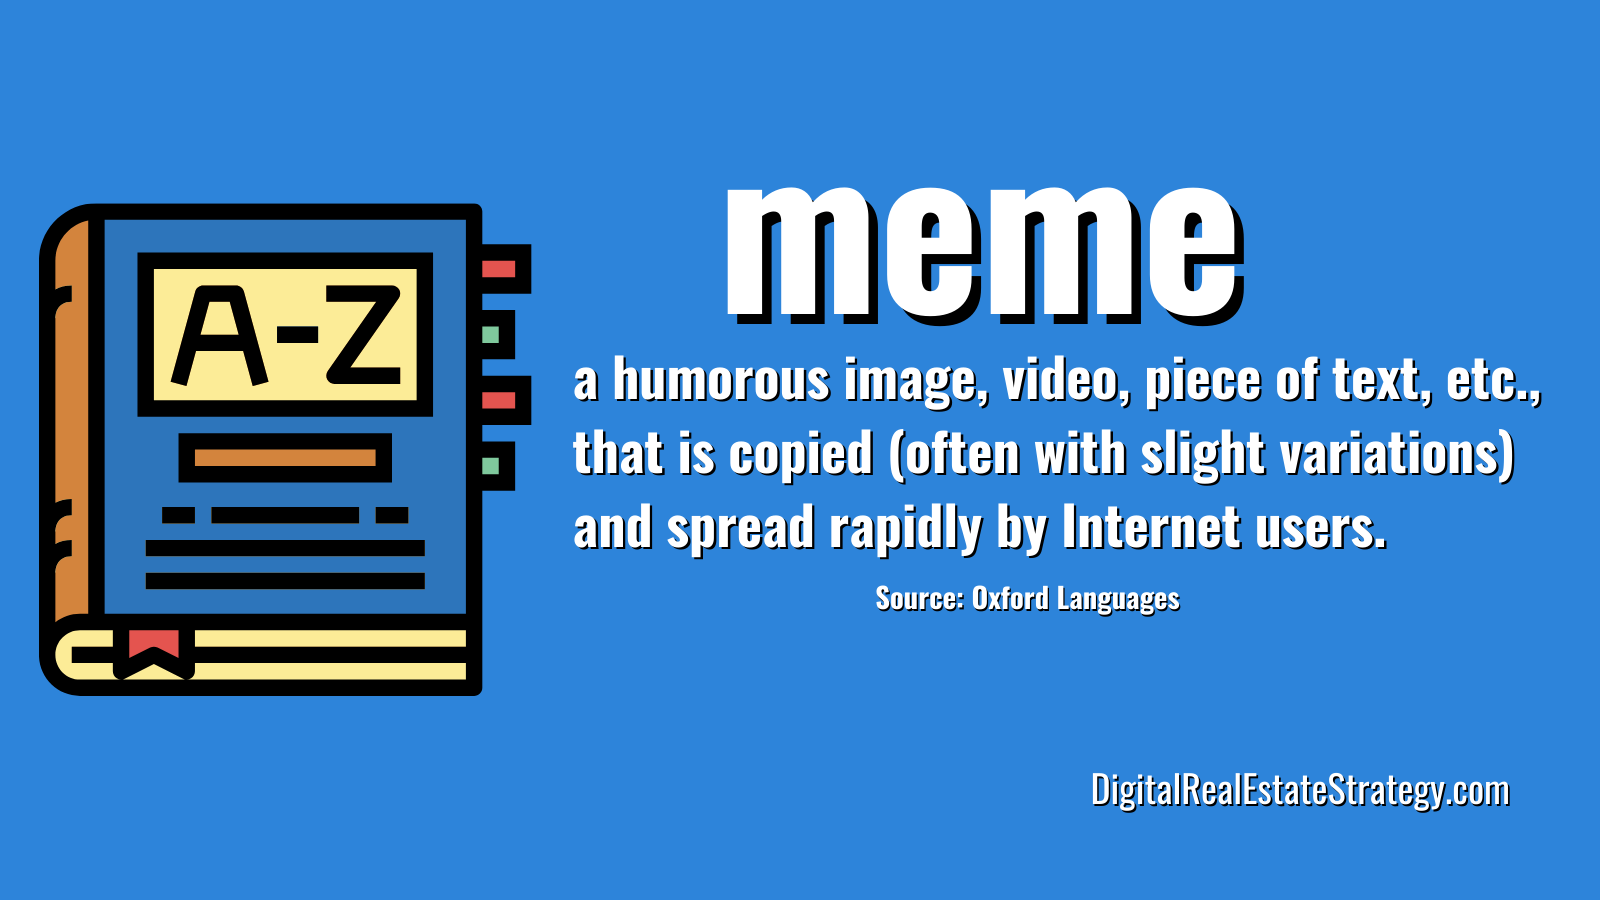 Jerome Lewis - eXp Realty - Digital Real Estate Strategy - Real Estate Memes - Definition of Meme